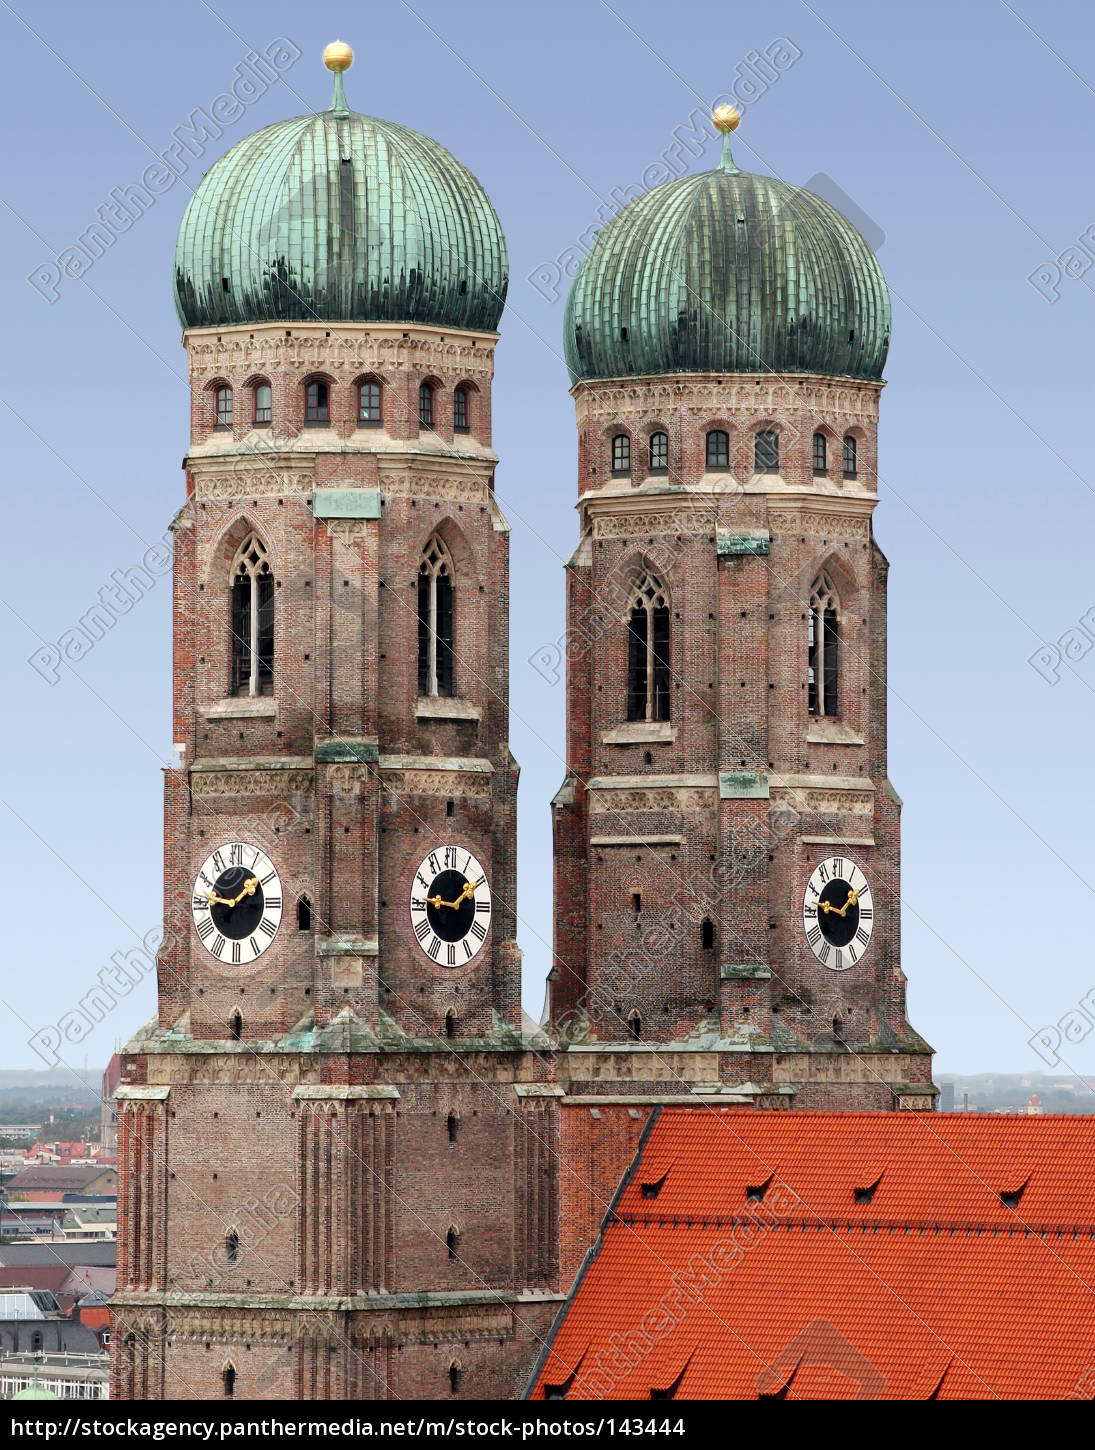 frauenkirche, munich - 143444